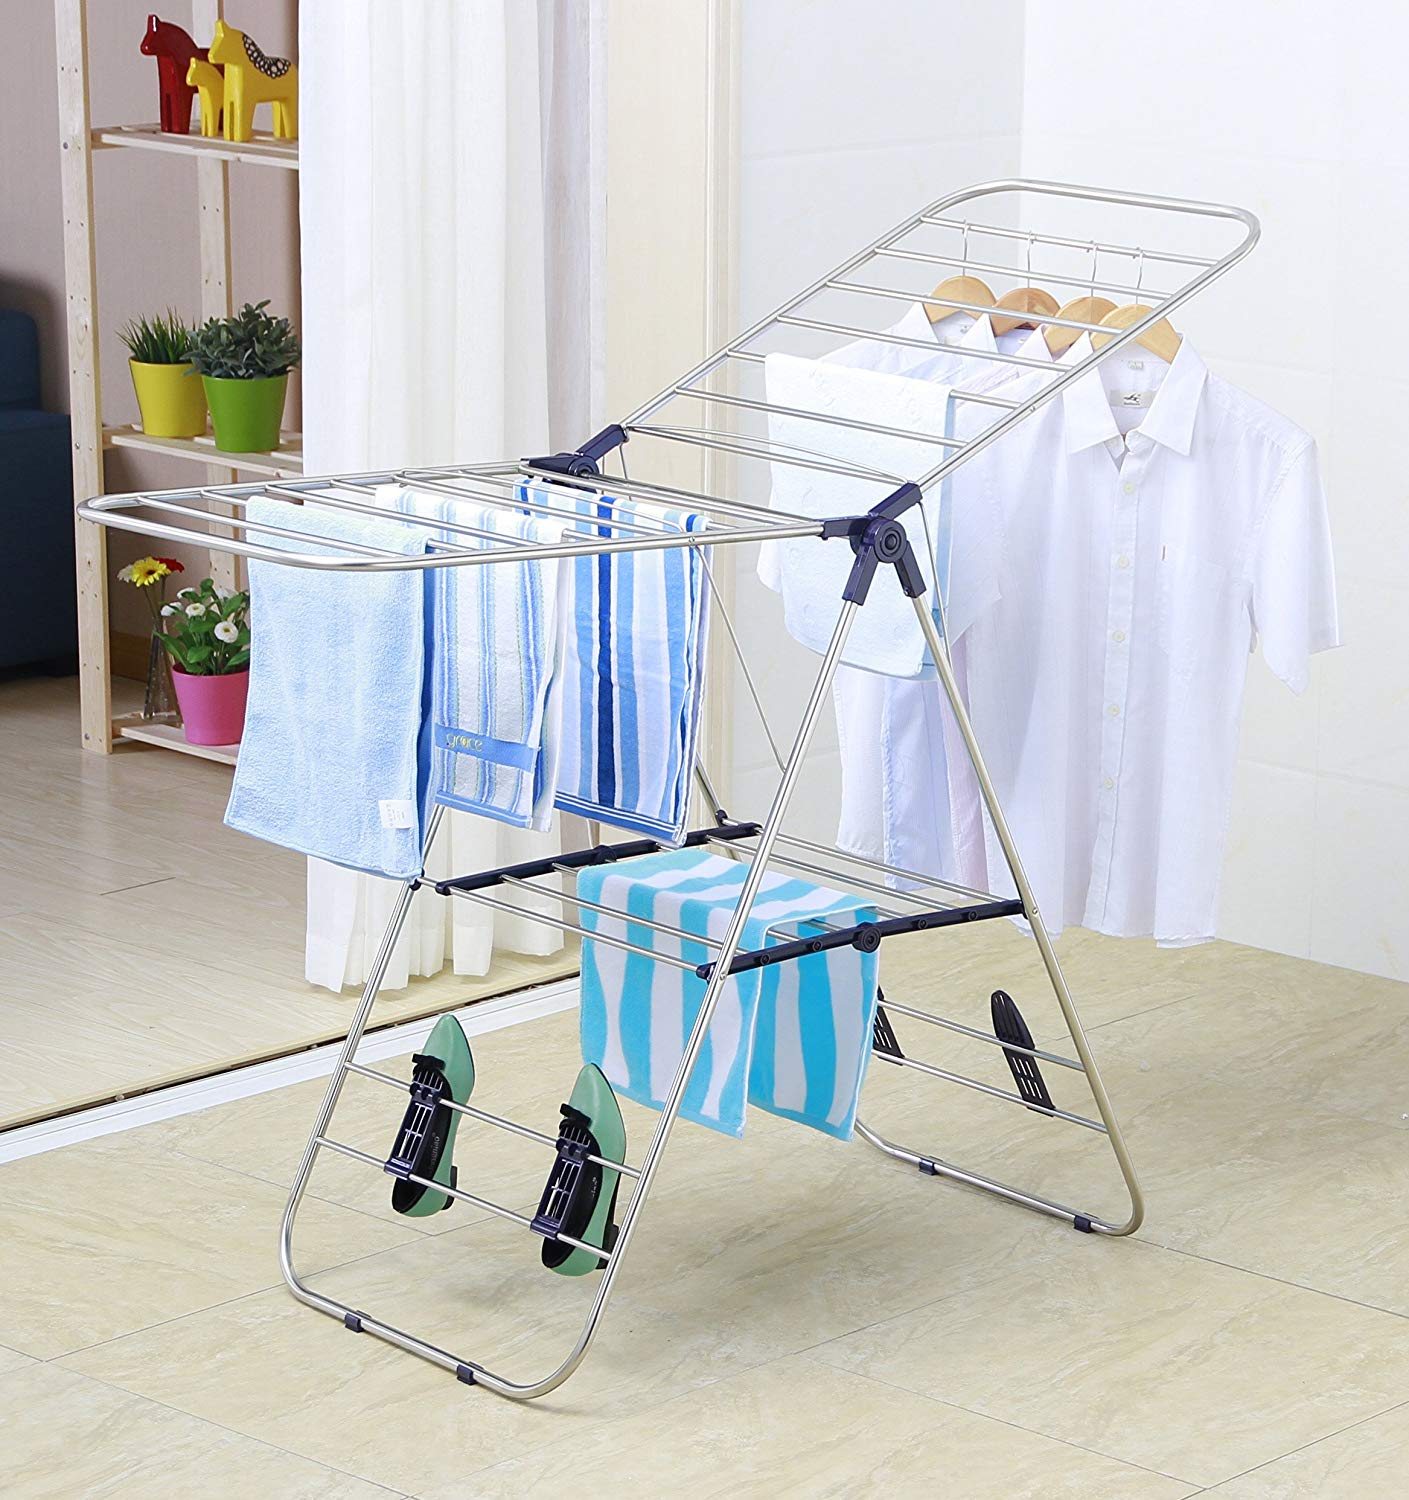 Top 10 Best Portable Clothes Racks in 2020 Reviews | Buyer's Guide